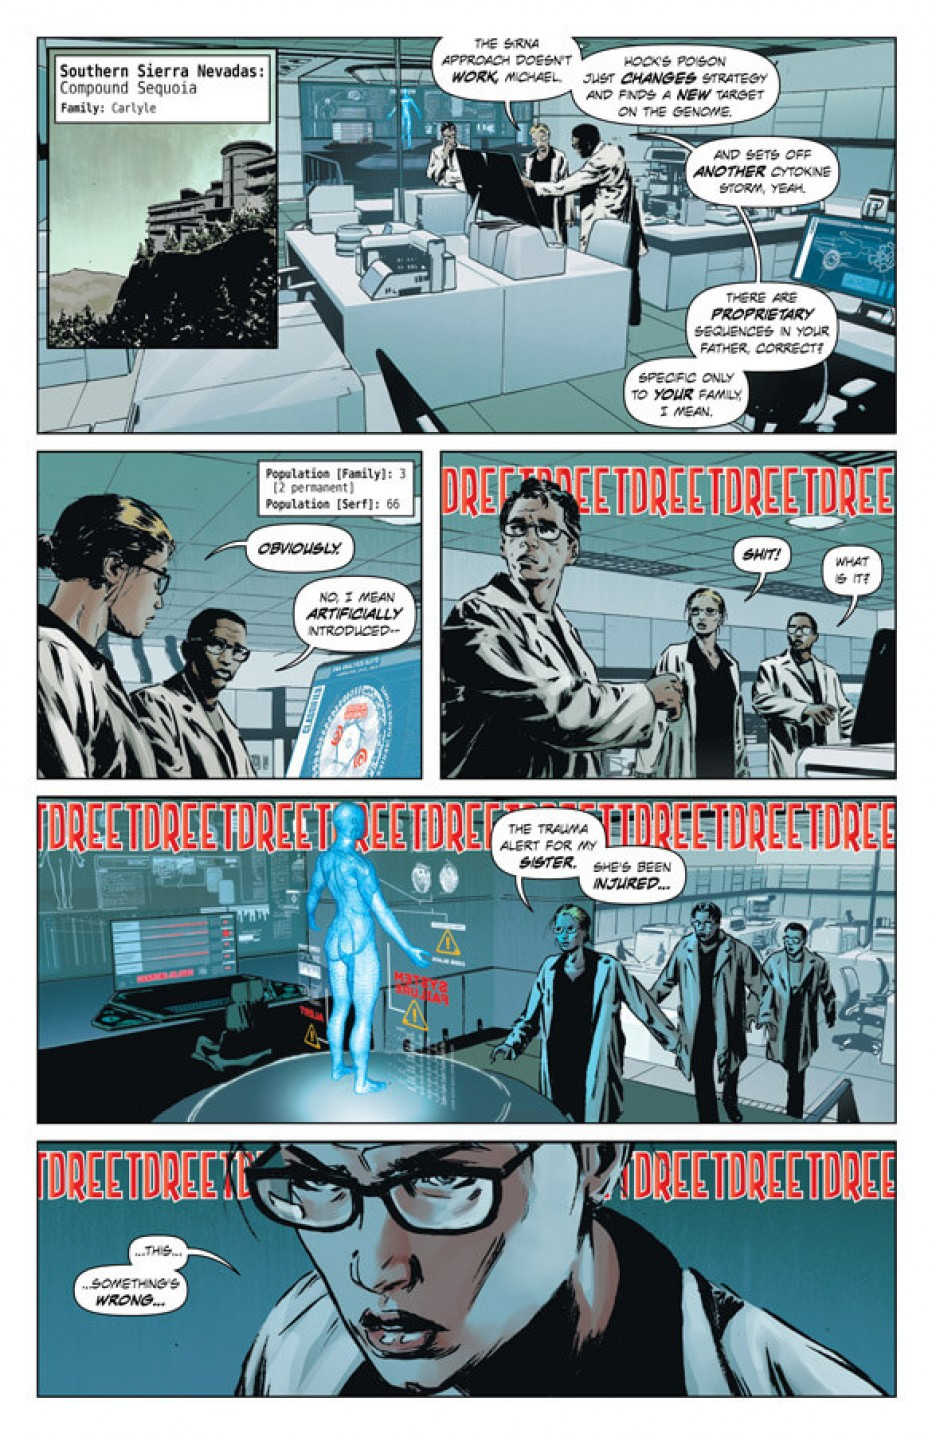 Lazarus19-Preview-Page1-9031c-932x1433